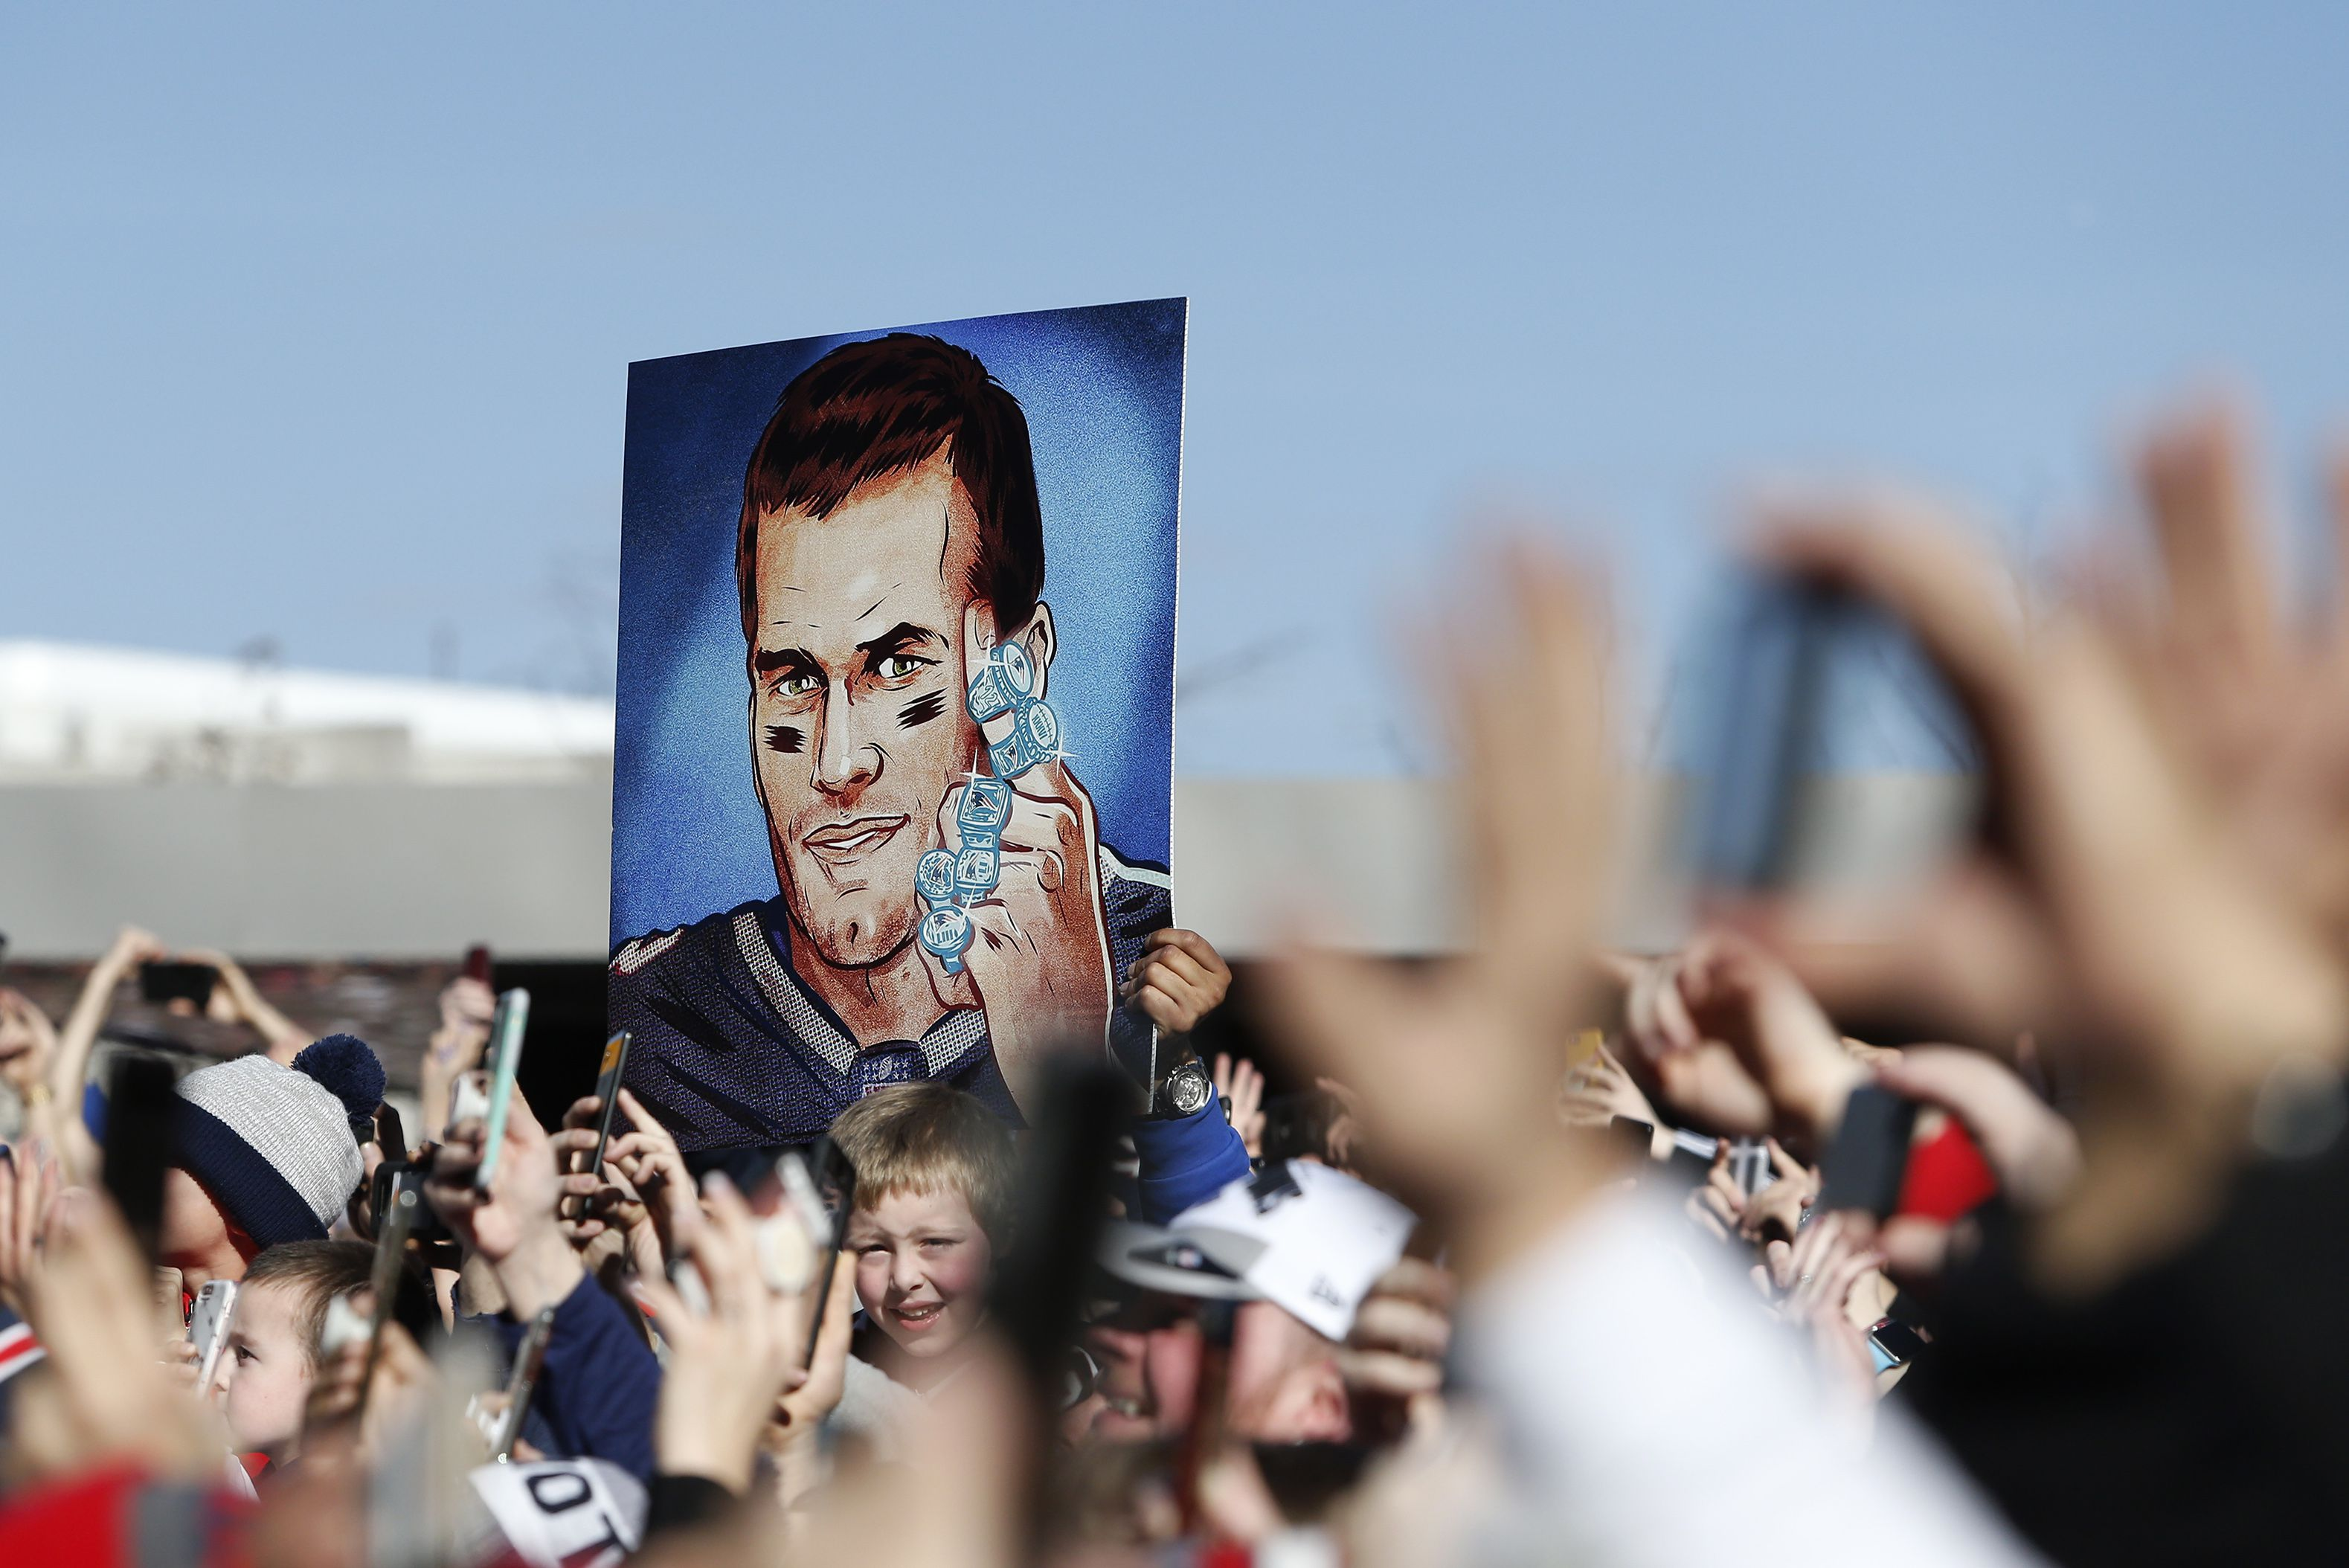 A Tom Brady sign in the middle of the crowd